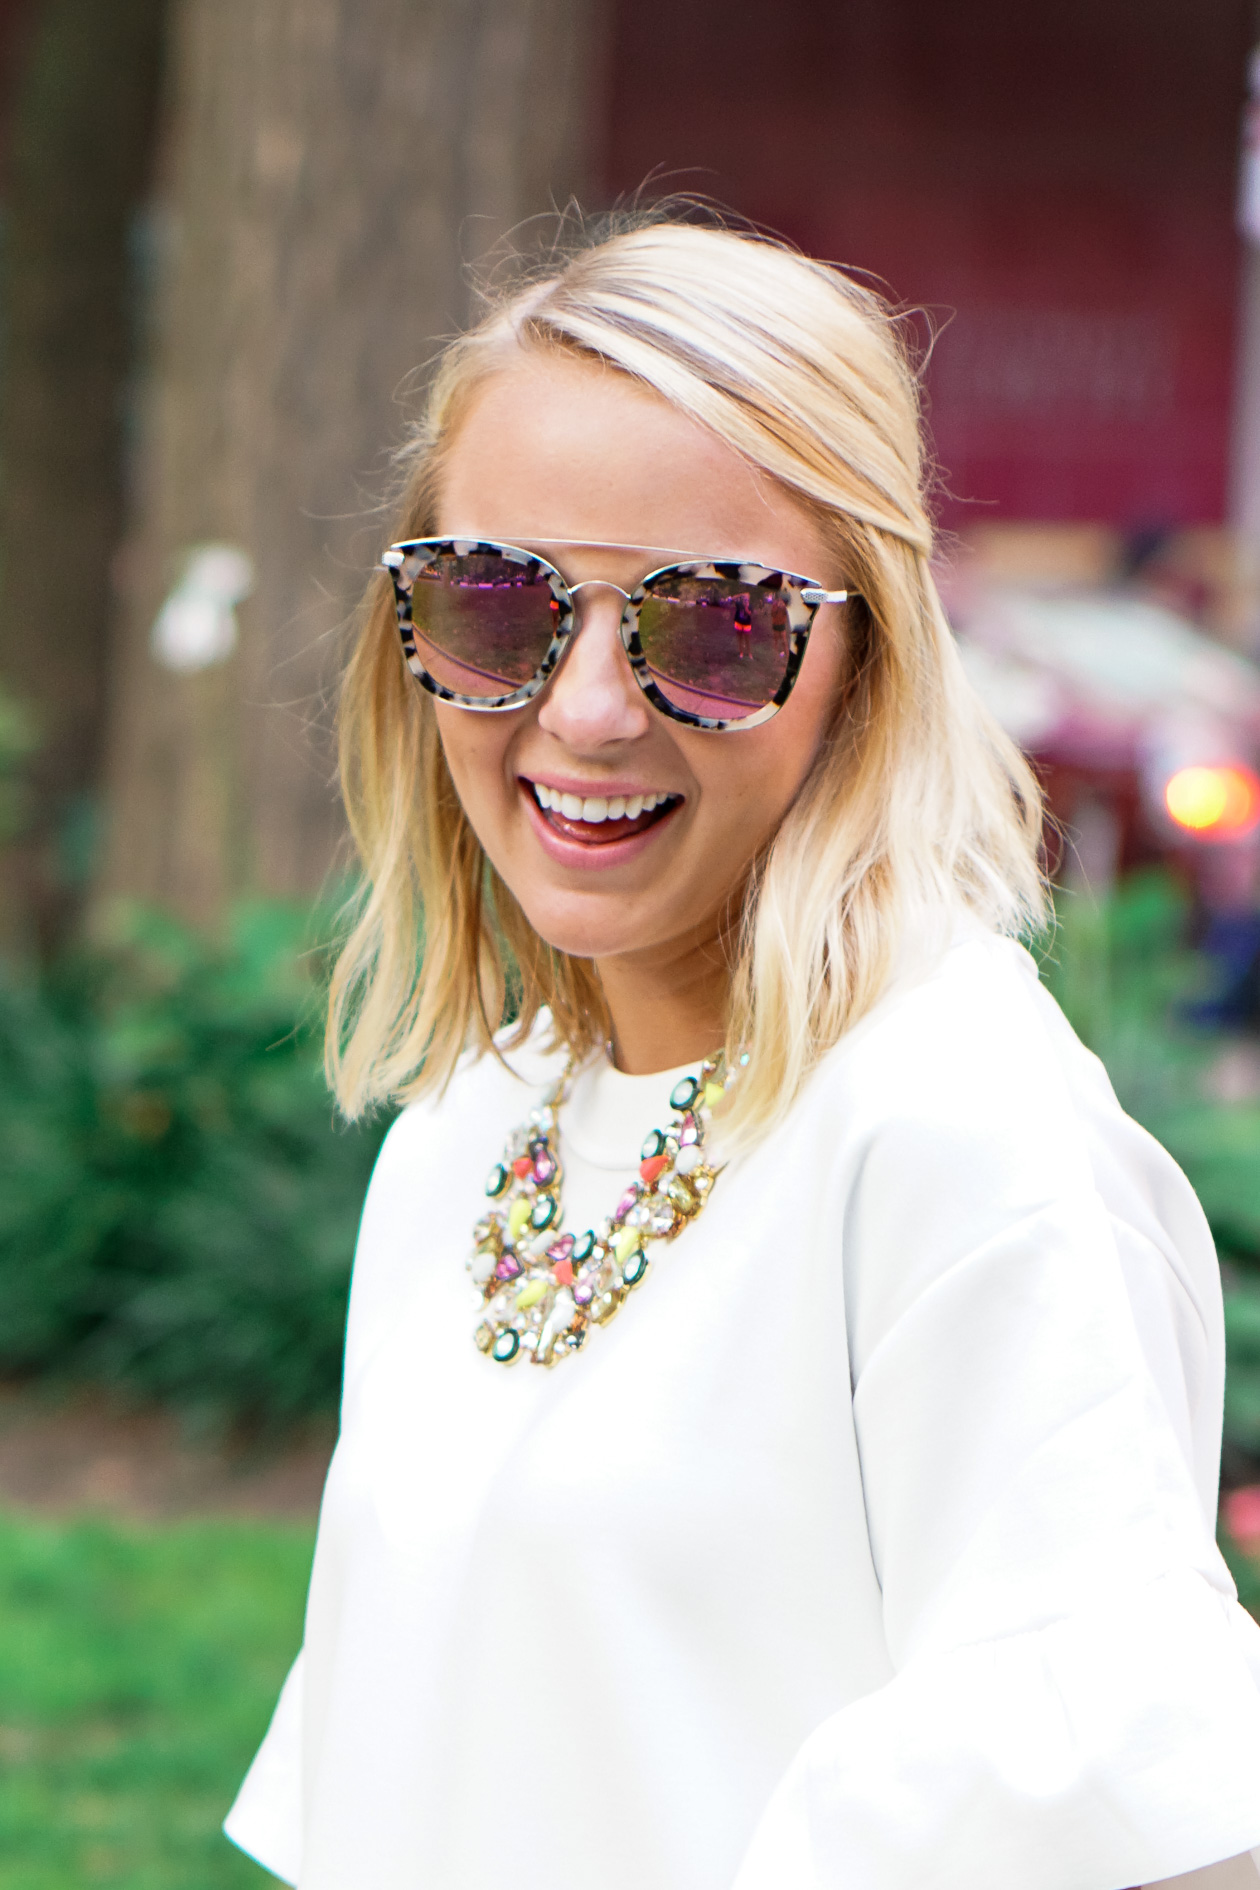 White Halogen ruffle dress and Diff tortoise sunglasses with J. Crew statement necklace